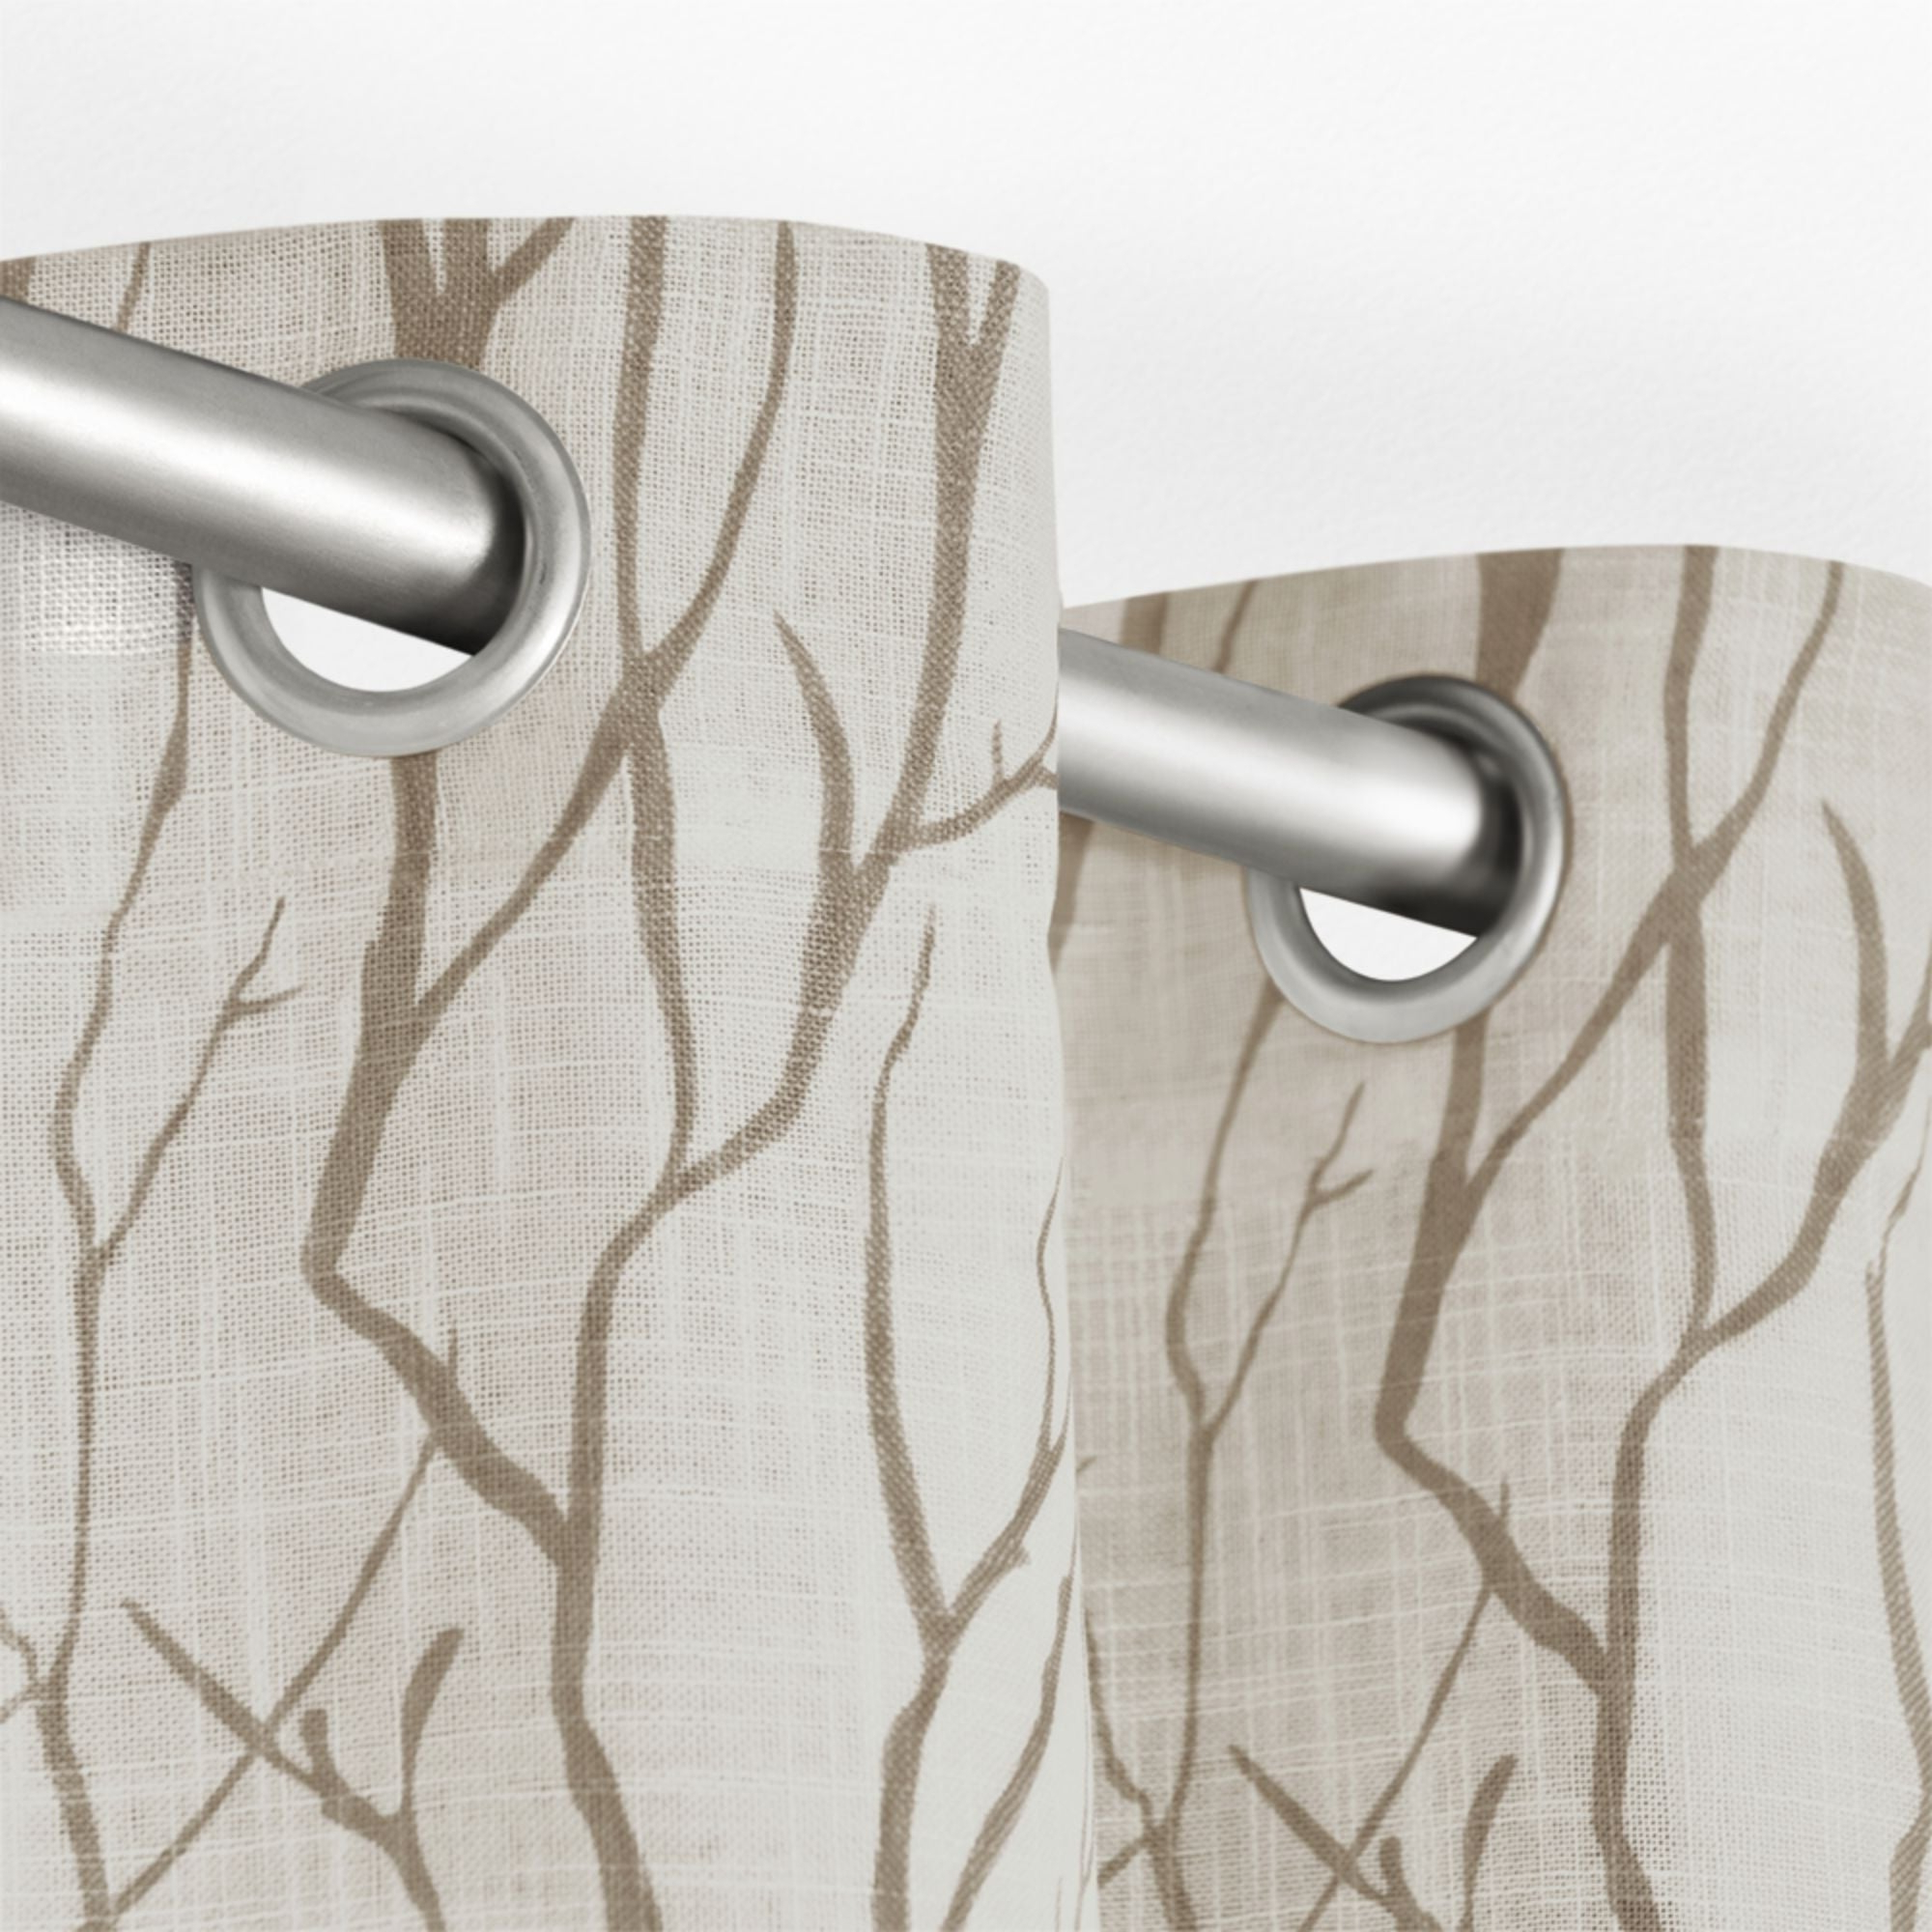 Oakdale Textured Linen Sheer Grommet Top Curtain Panel Pairs With Best And Newest Shop Ati Home Oakdale Textured Linen Sheer Grommet Top (View 15 of 20)